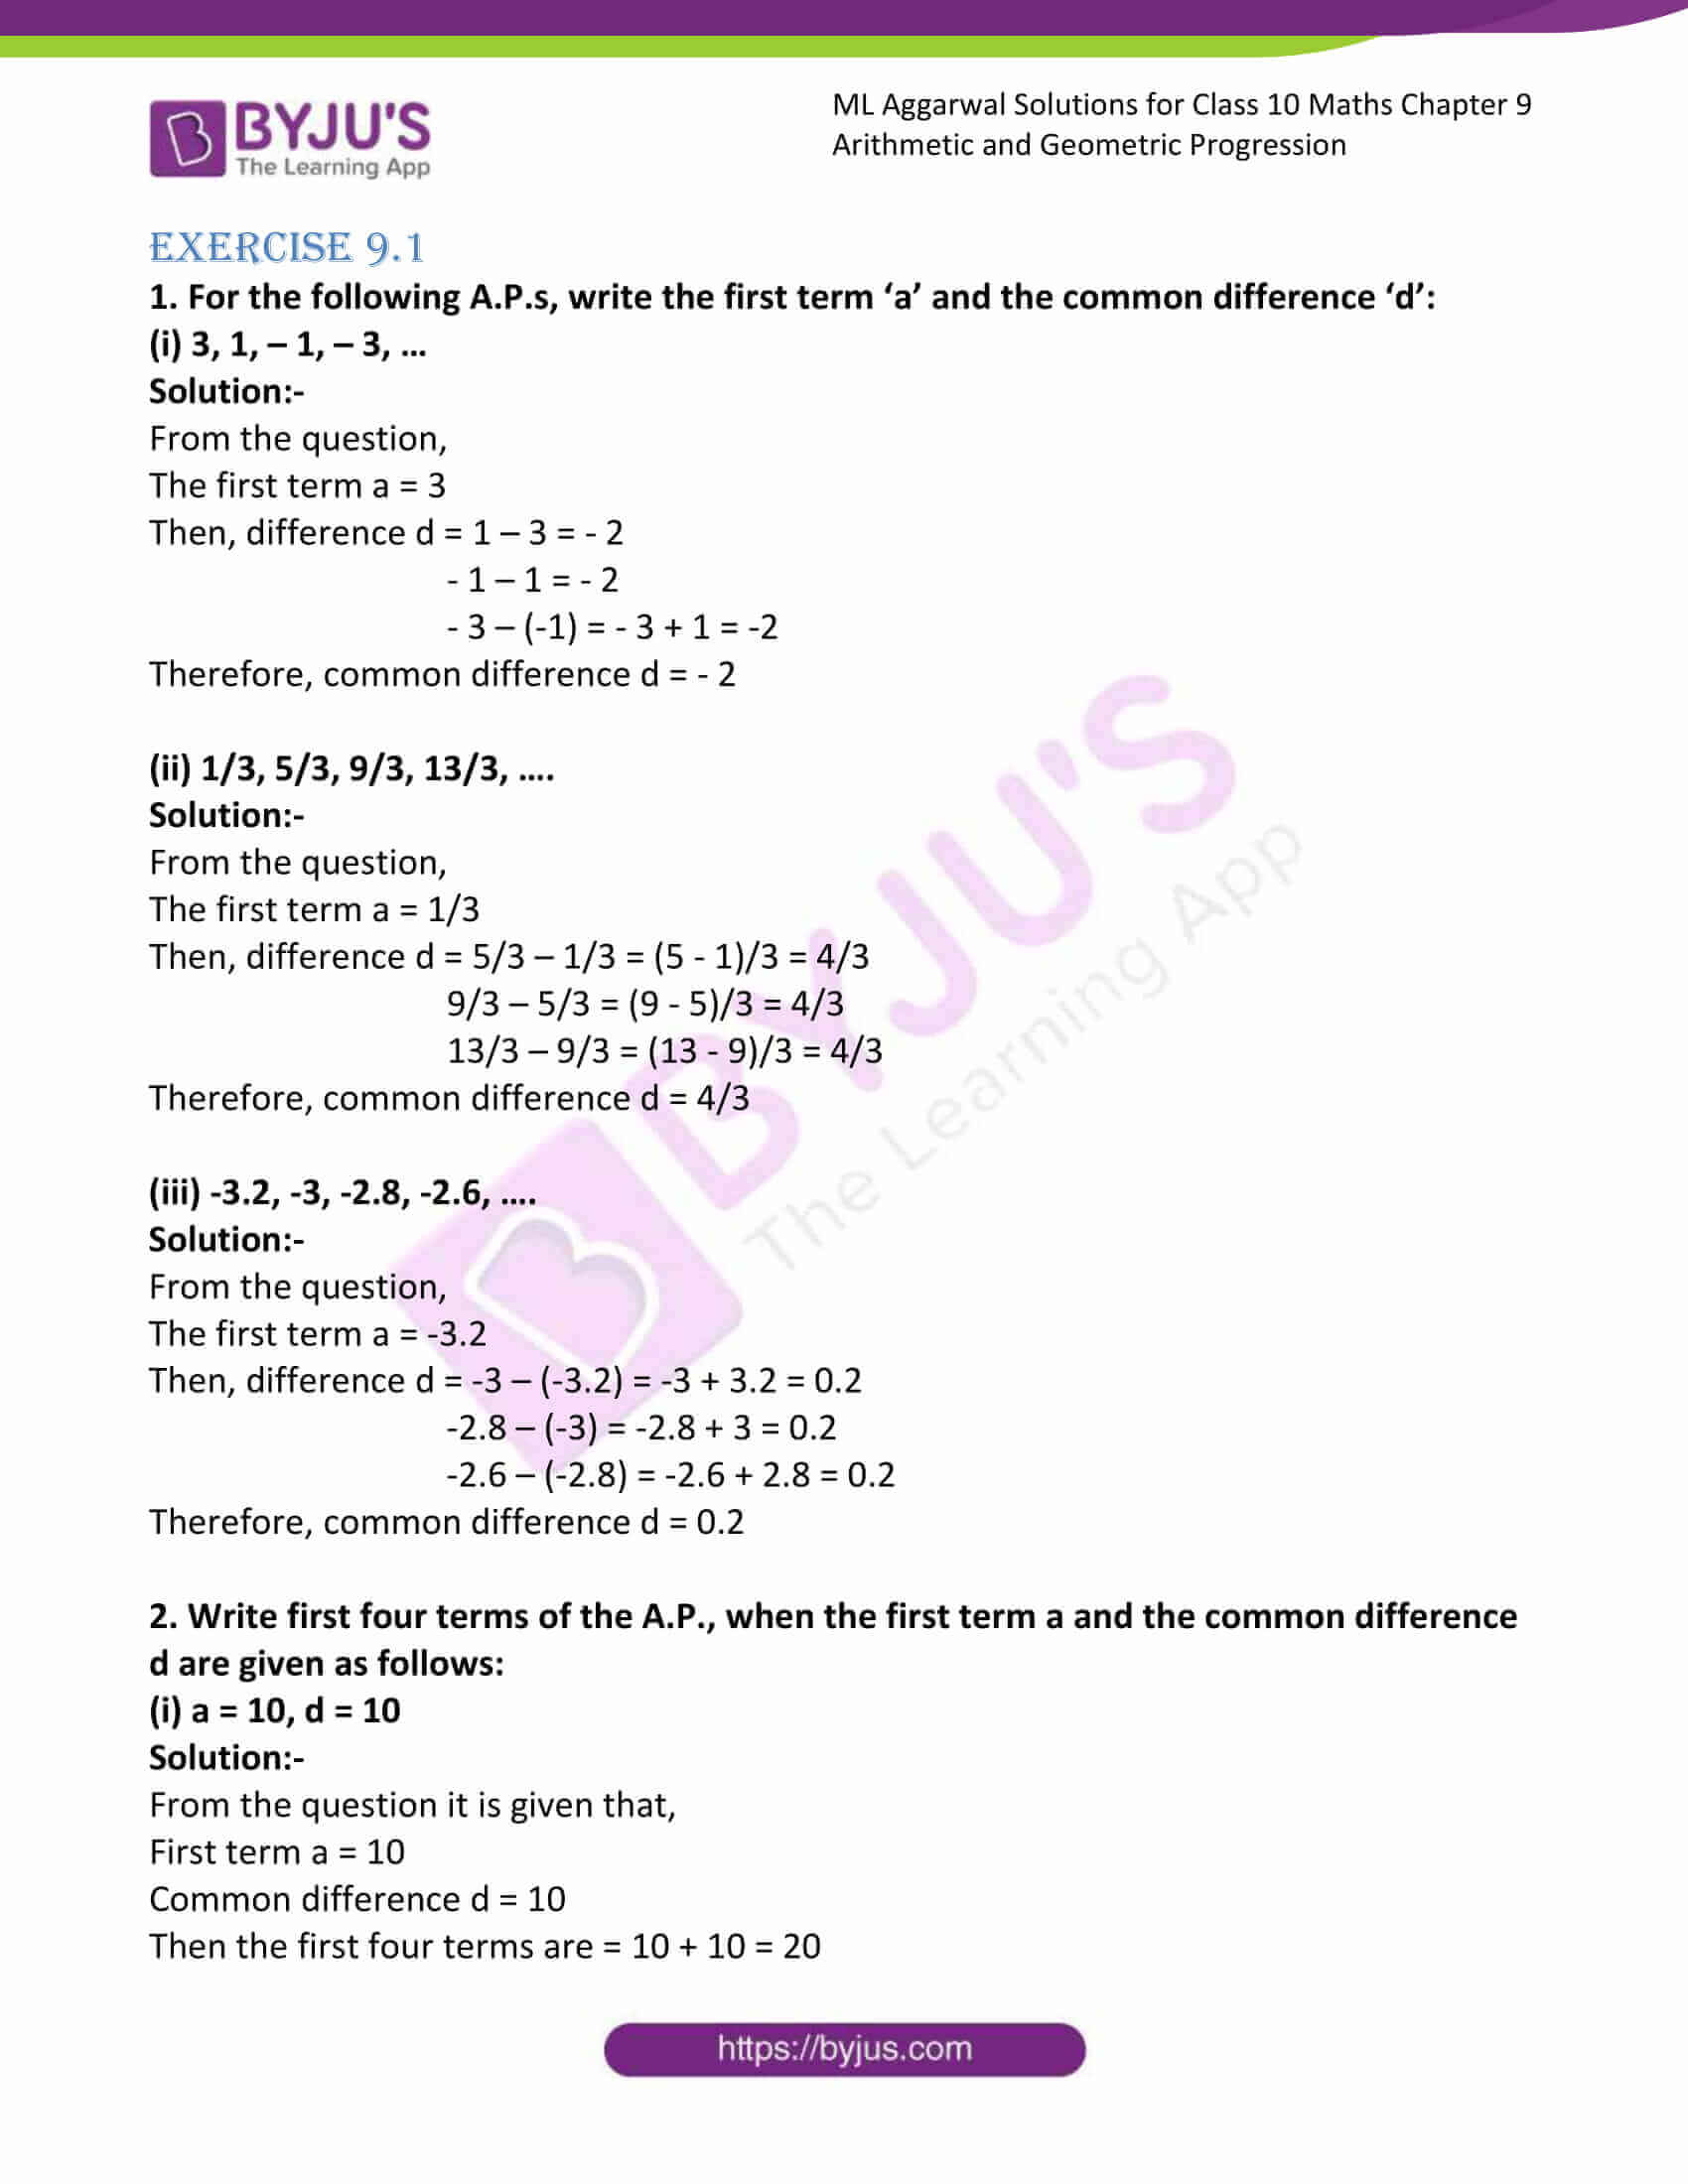 ml aggarwal solutions class 10 maths chapter 9 01